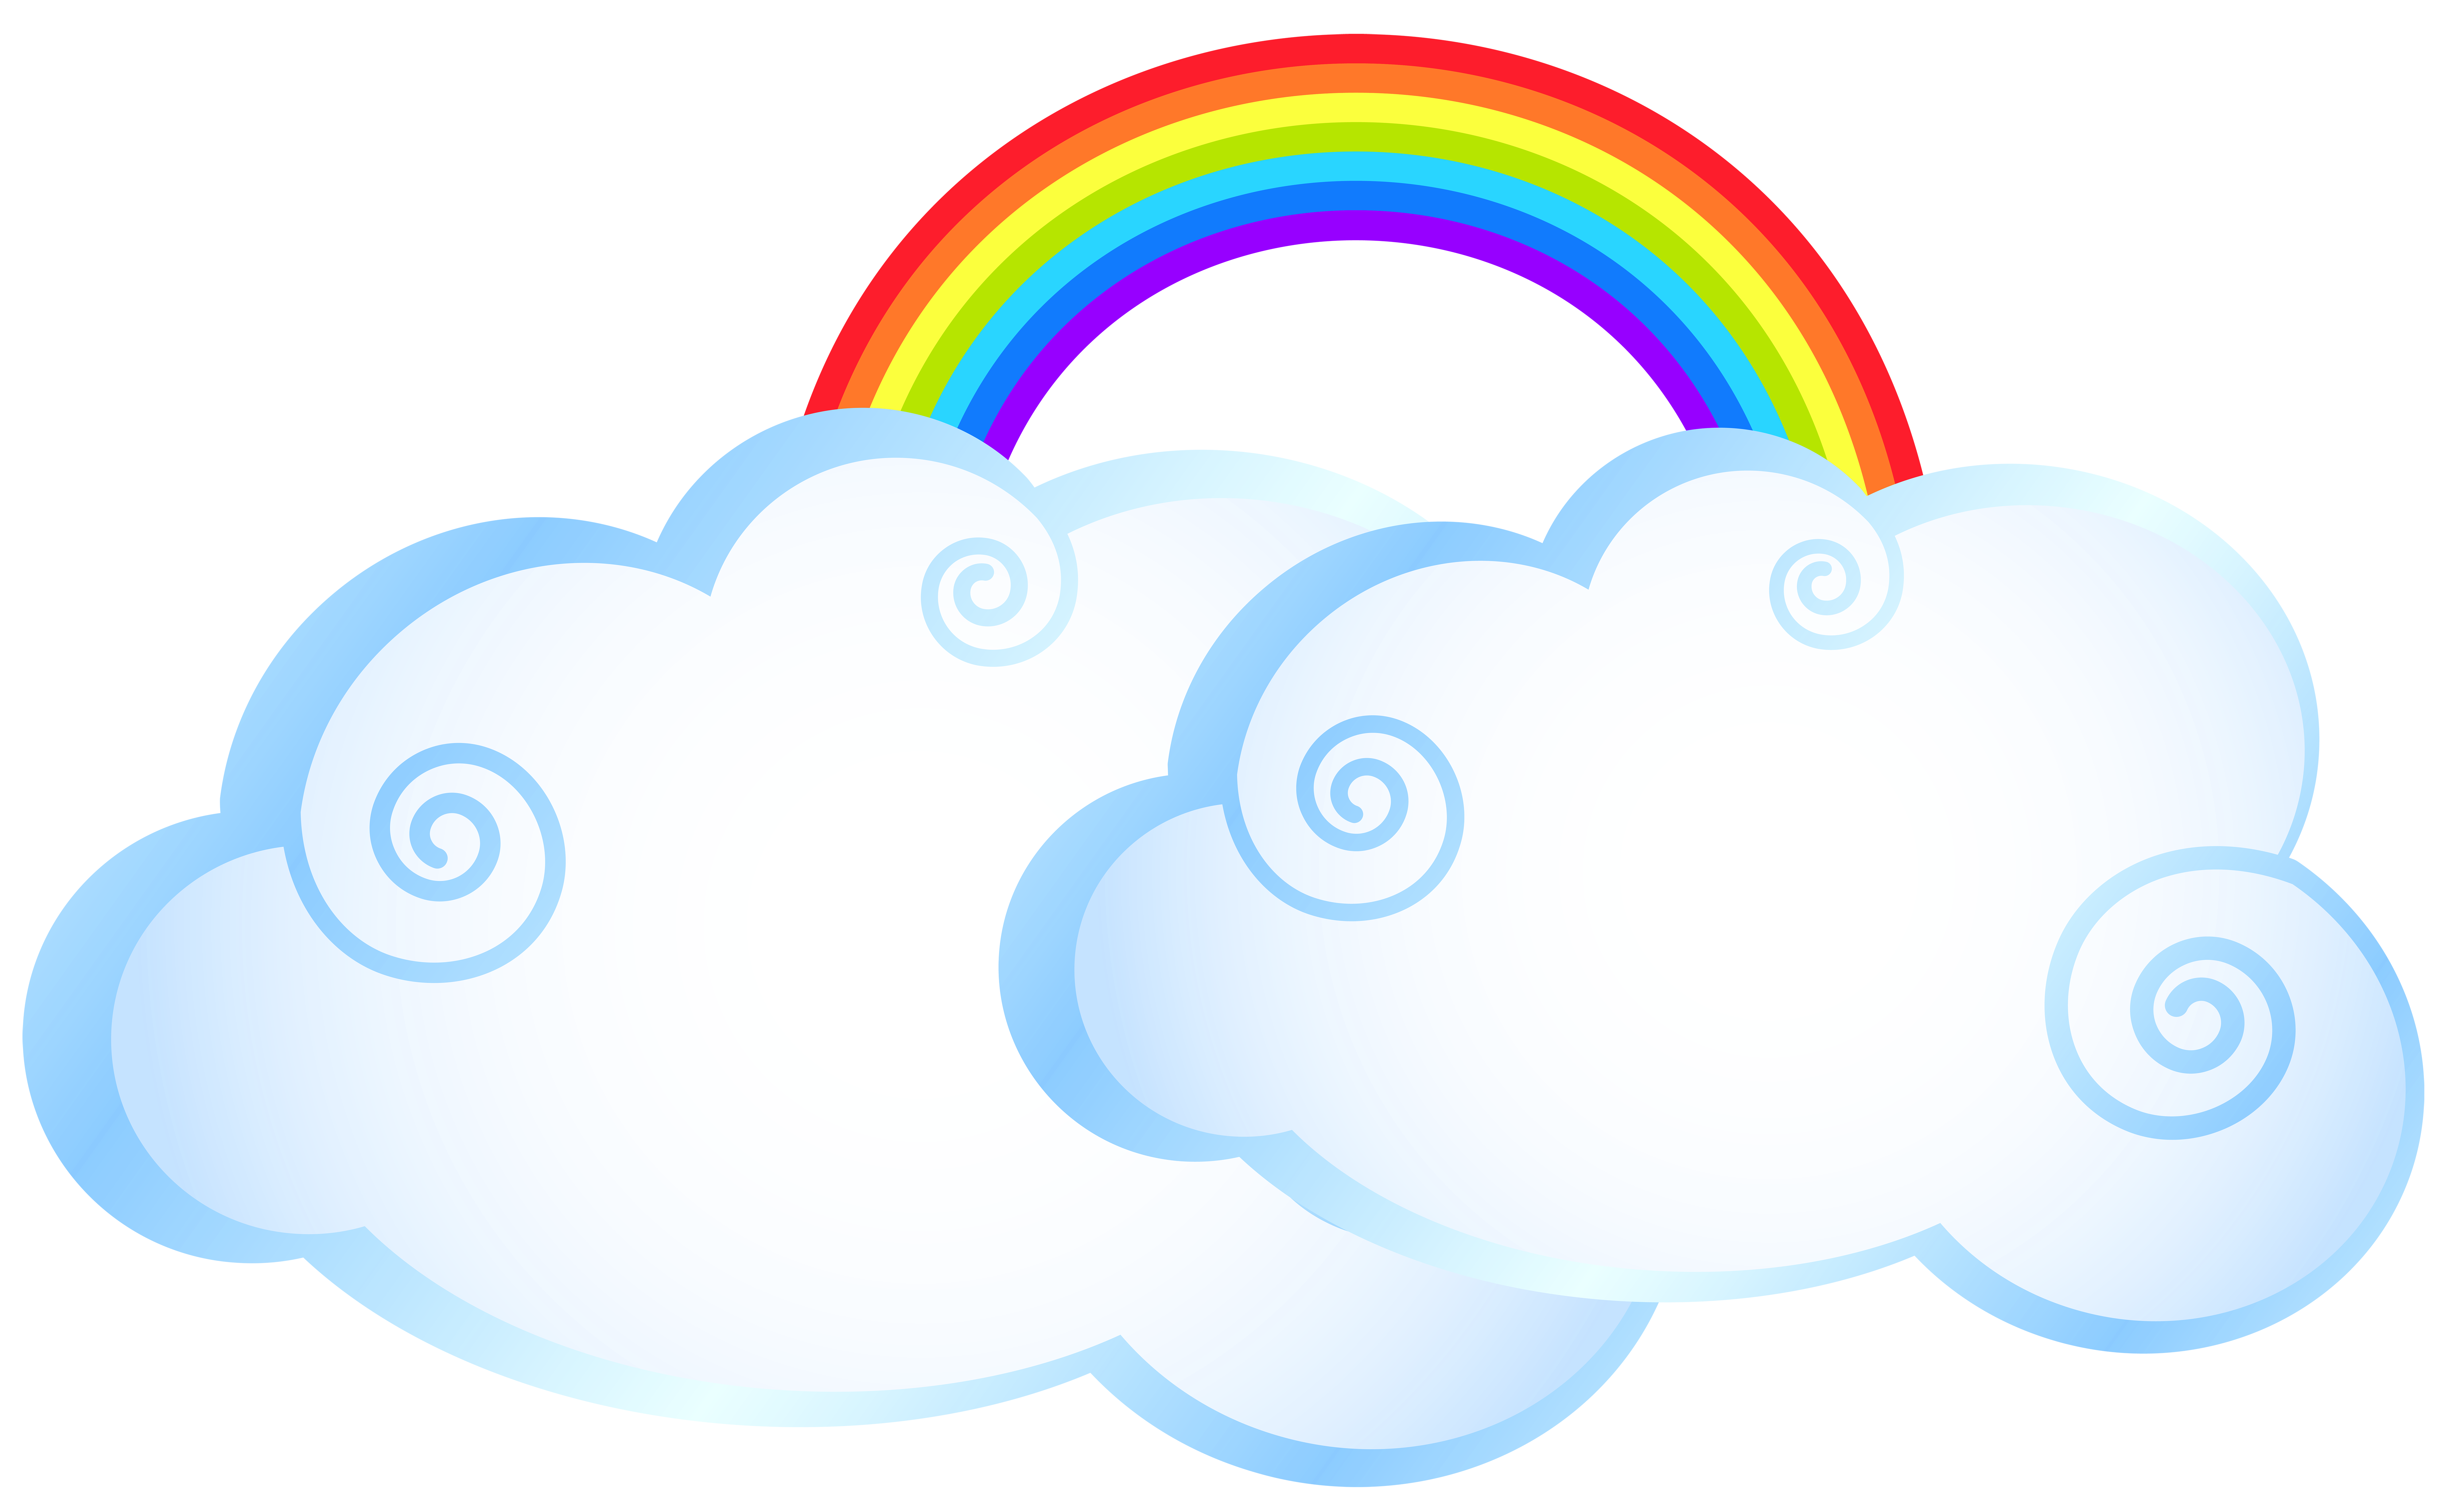 Rainbow with clouds transparent. Cloud clipart circle